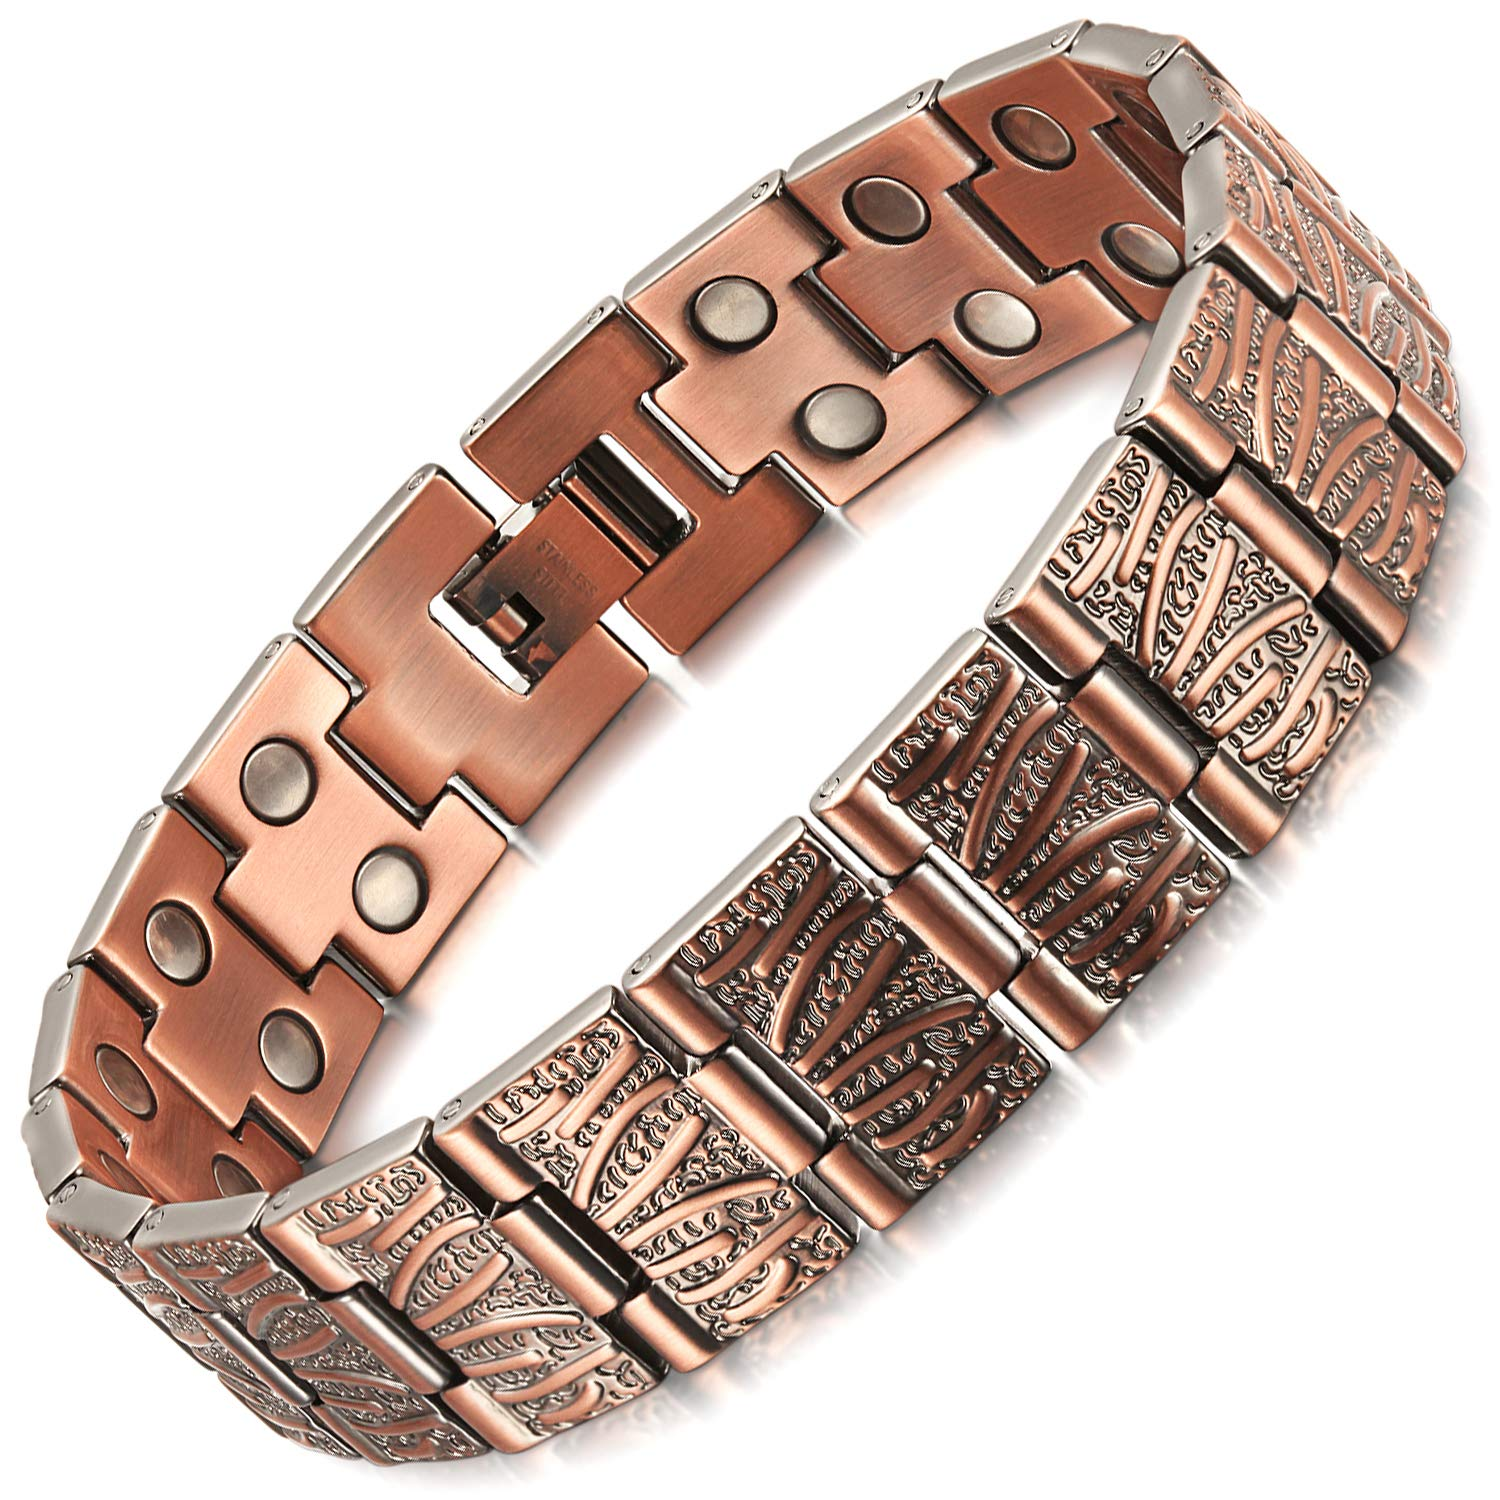 Rainso Mens Double Row Pure Copper Magnetic Therapy Bracelet Pain Relief for Arthritis Adjustable by Rainso